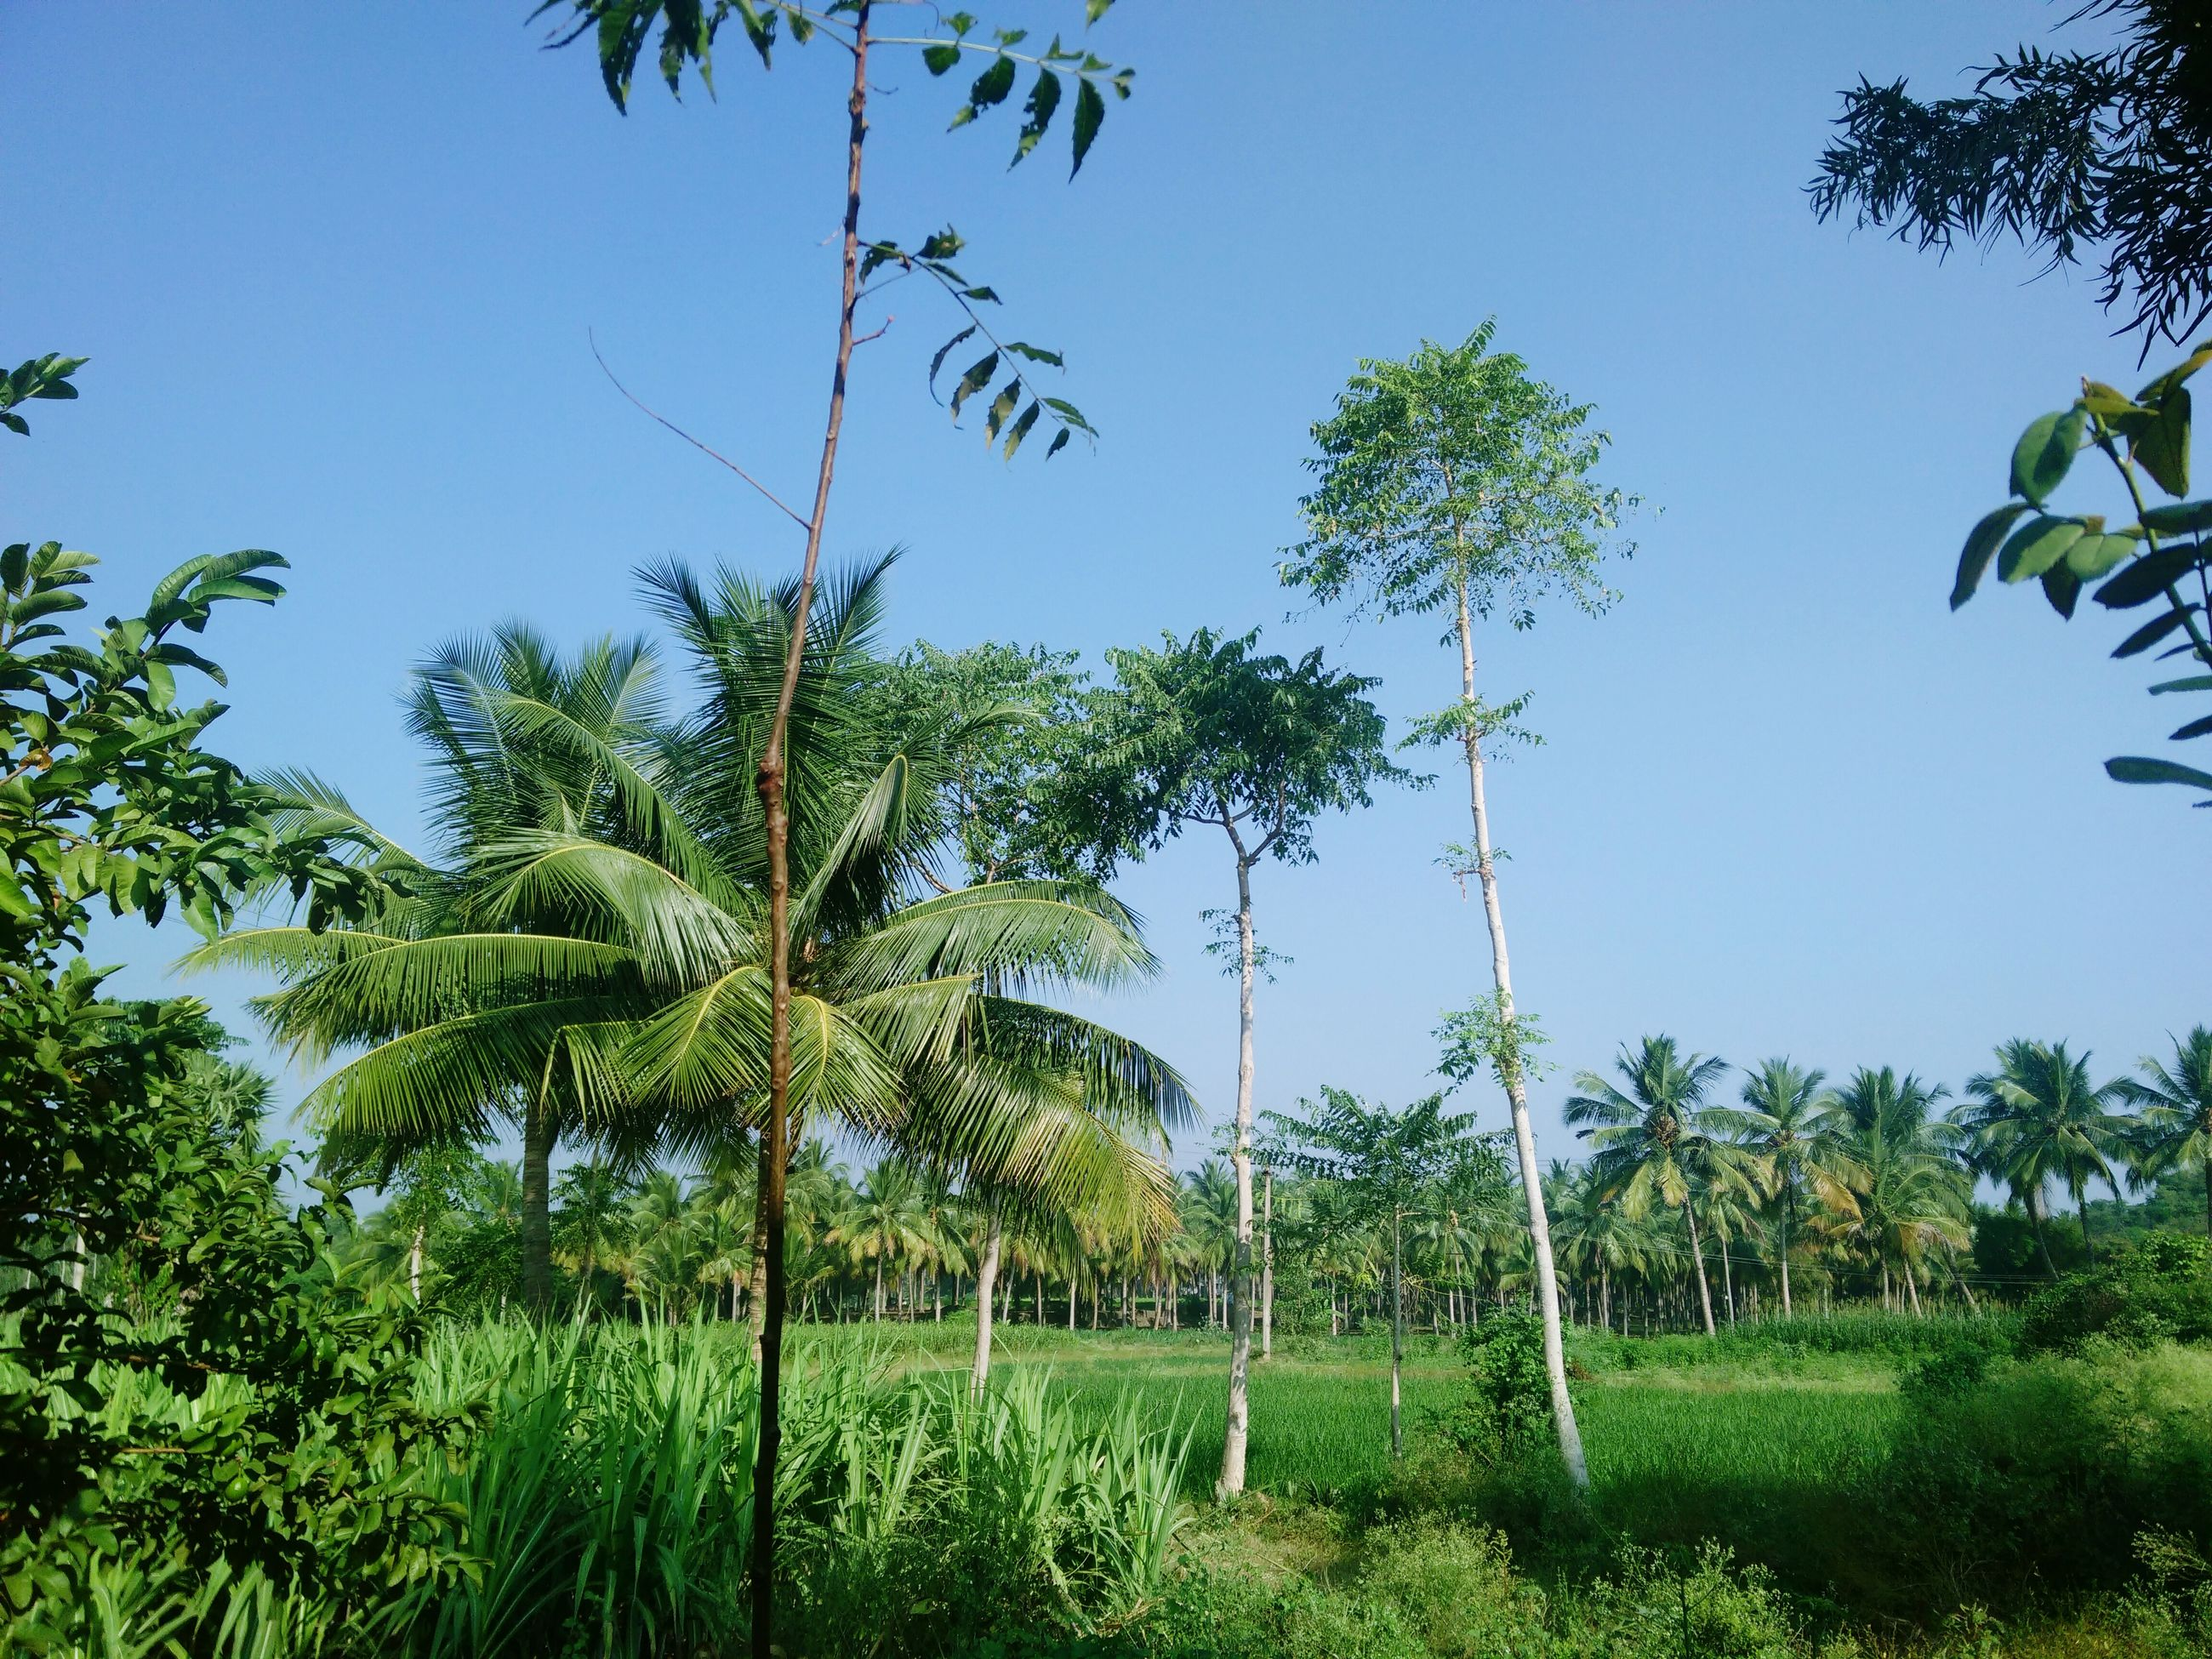 tree, clear sky, growth, green color, tranquility, tranquil scene, grass, nature, field, beauty in nature, branch, landscape, scenics, blue, green, plant, tree trunk, lush foliage, sunlight, growing